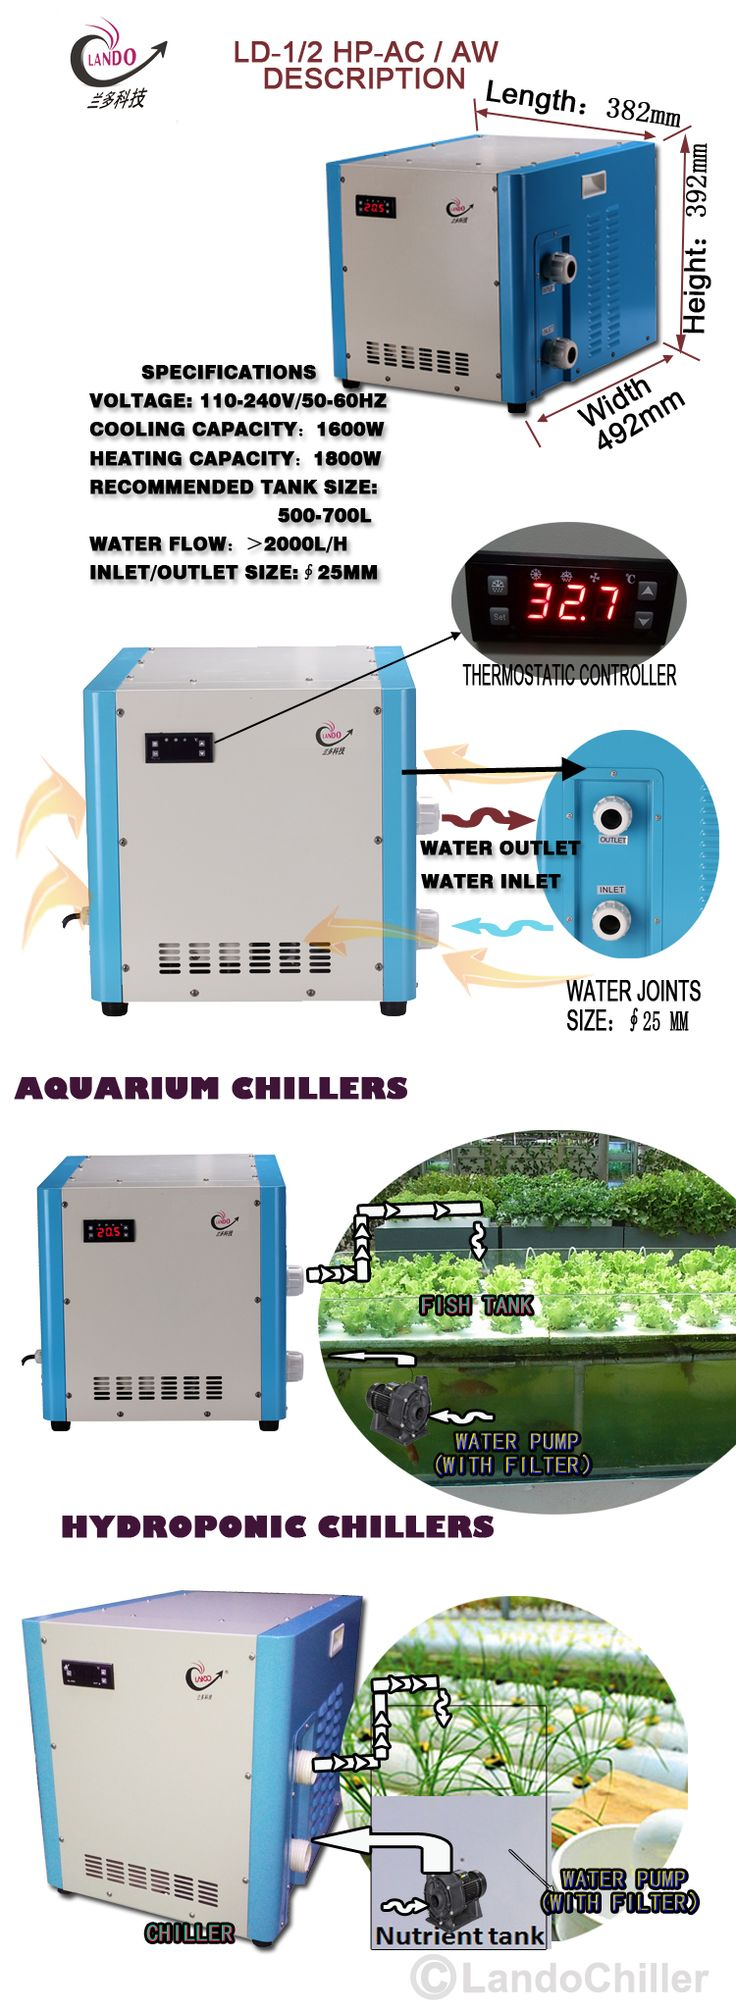 Ideal for keeping hydroponic solution in your reservoir at the perfect temperature. Hydroponic Chillers with micro control system and LCD display, very user-friendly . Large refrigeration capacity (recommended 1000-1200 L) . Freon free, environmentally friendly (uses R134a or R410a) Temperature memory system. Anti-Freezing system will not allow the heat exchange to freeze. #Hydroponicchiller   #Refroidisseurhydroponique #水耕チラー #Enfriadorhidropónico